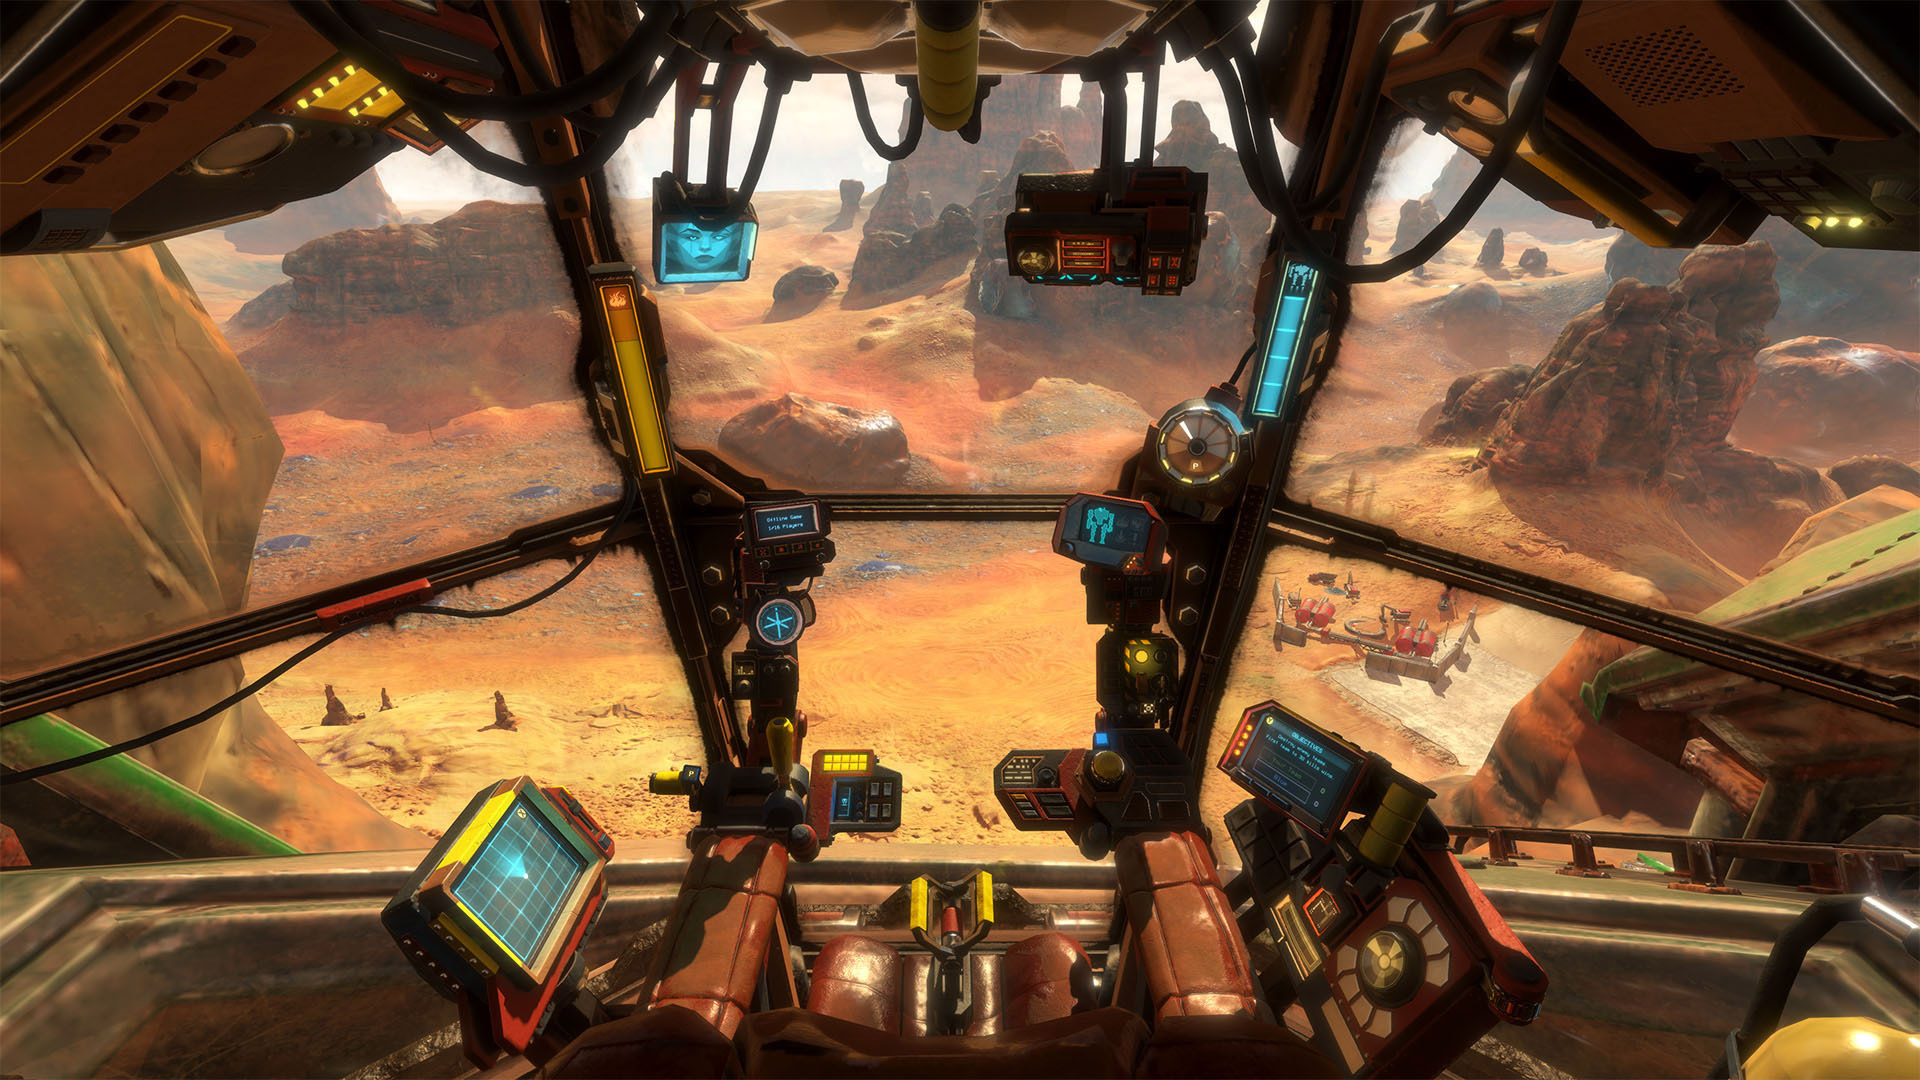 VR Mech Combat Game 'Vox Machinae' is Back with Motion Input, Closed